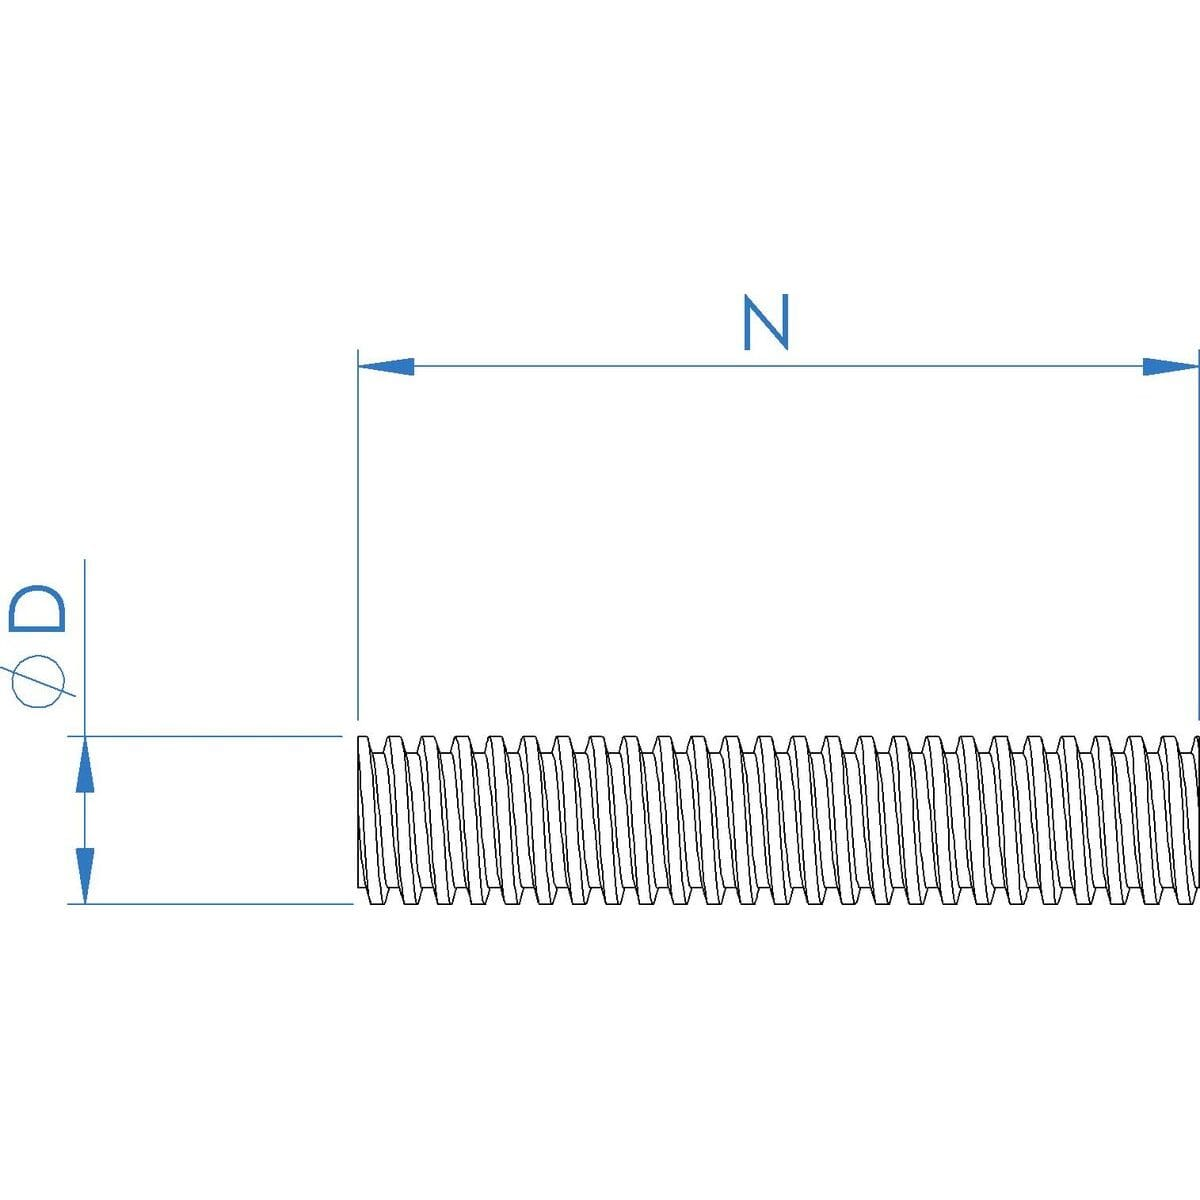 TR10x2 (10mm x 2mm Lead) x 560mm Trapezoidal Lead Screws - Marine Stainless Steel (A4) Drawing